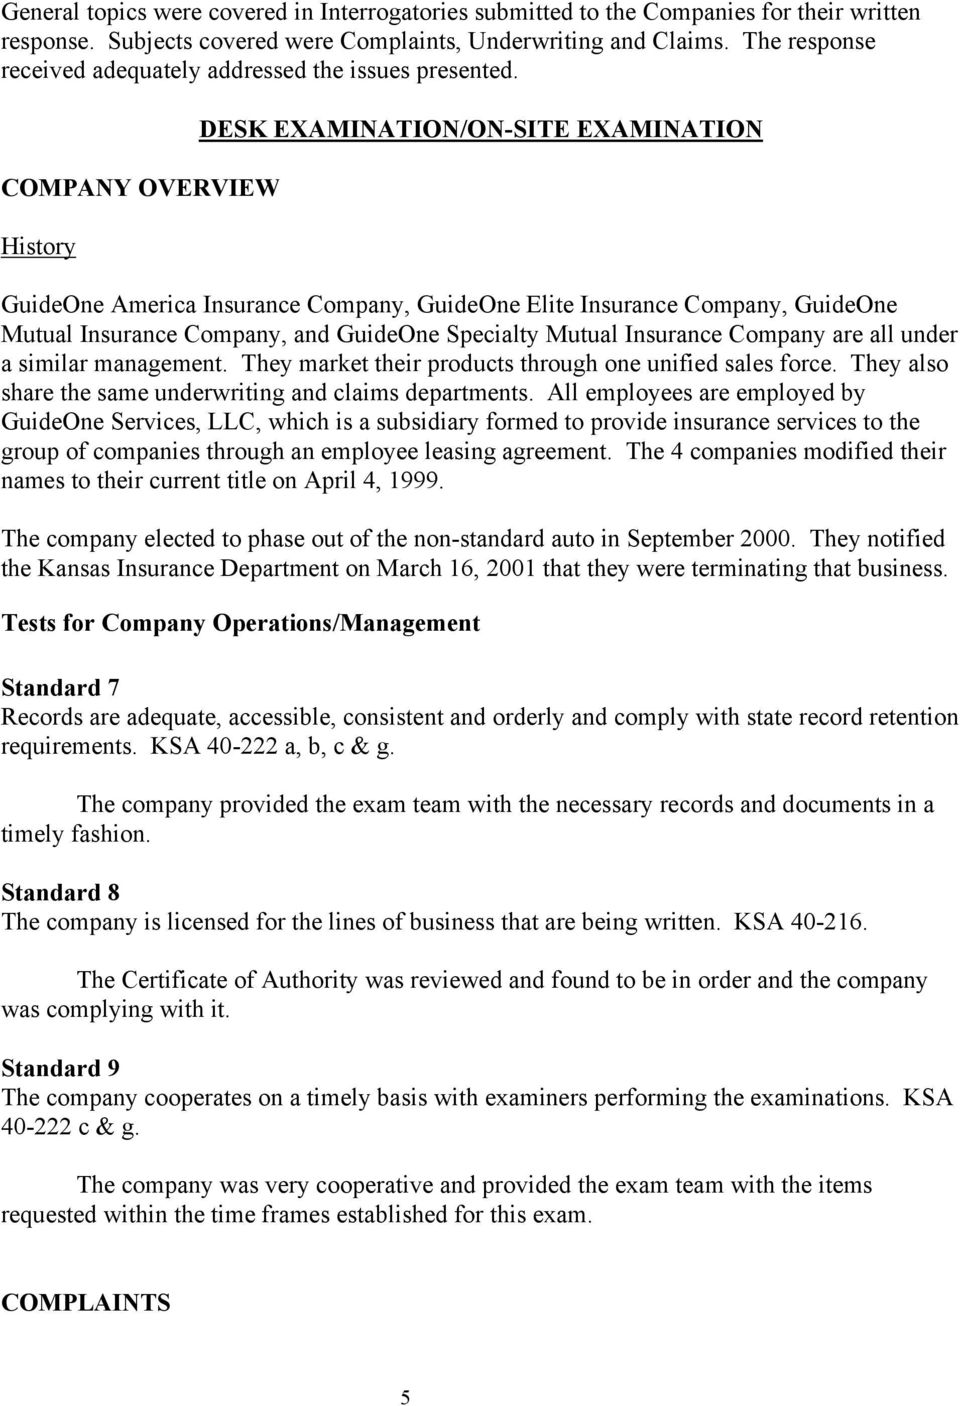 COMPANY OVERVIEW History DESK EXAMINATION/ON-SITE EXAMINATION GuideOne America Insurance Company, GuideOne Elite Insurance Company, GuideOne Mutual Insurance Company, and GuideOne Specialty Mutual